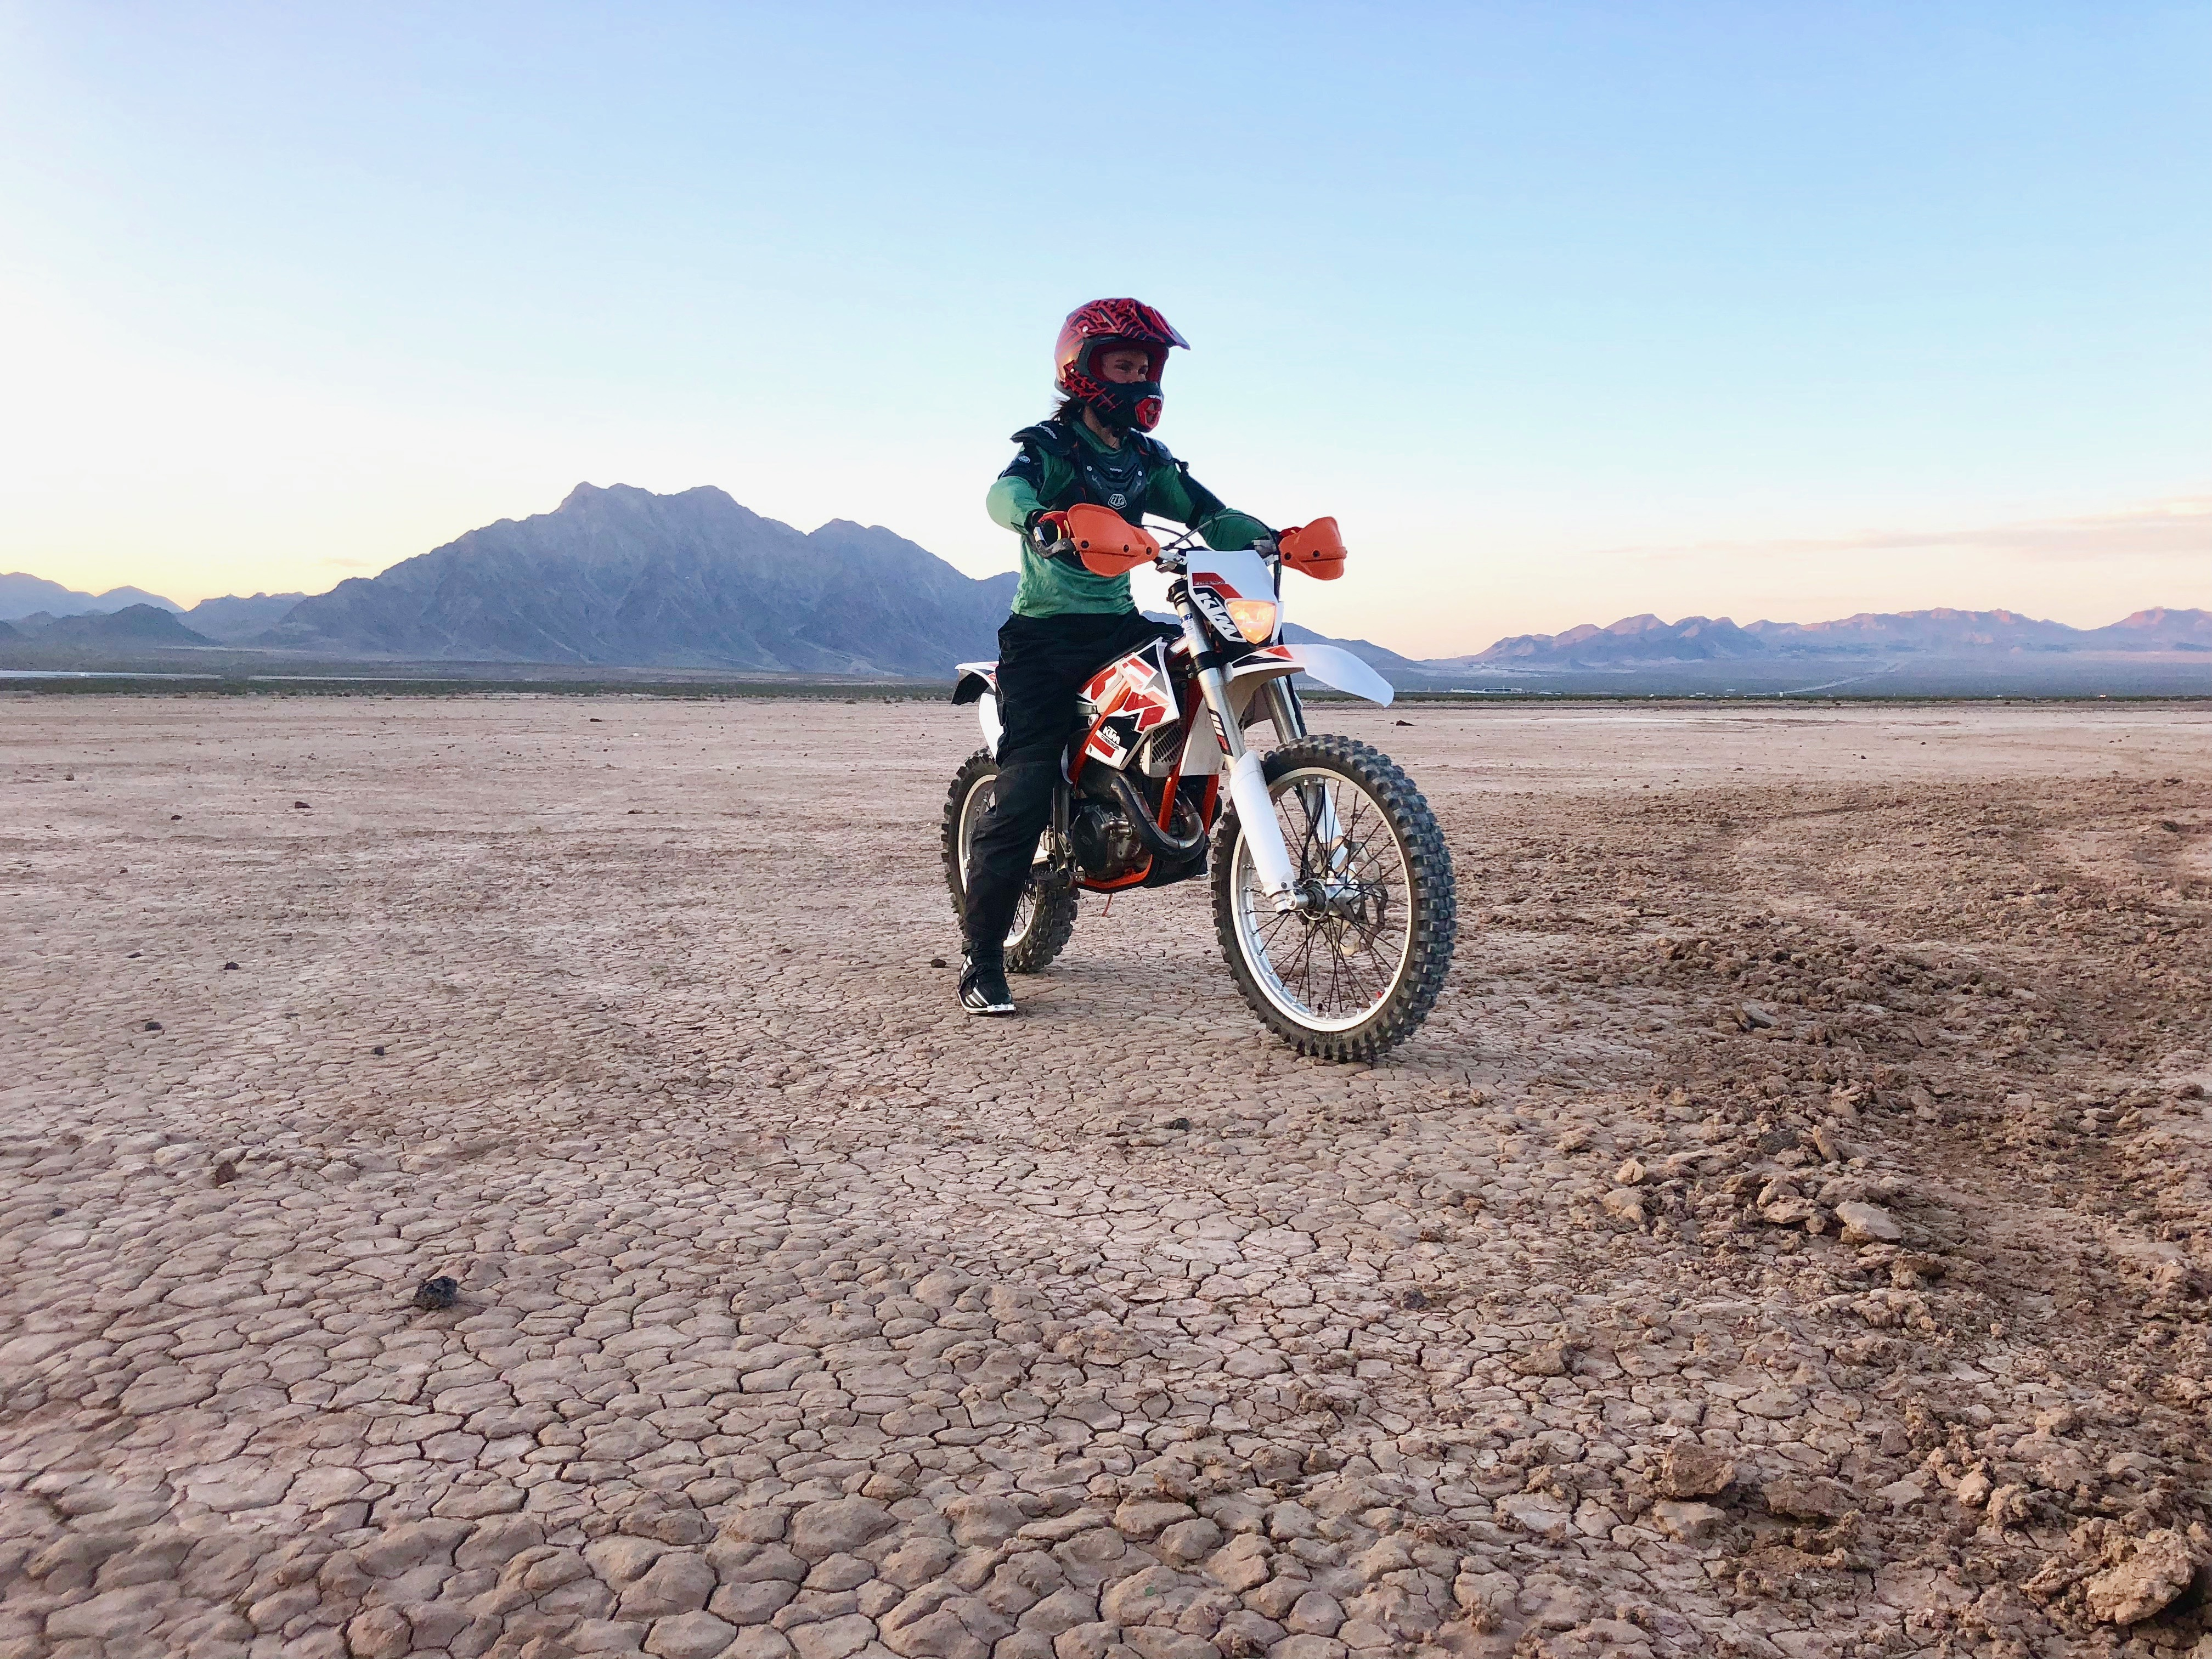 Elaina Arenz, Co-Owner Chicks Climbing & Skiing, pushing her limits on her brand newdirt bike.©Arenz collection